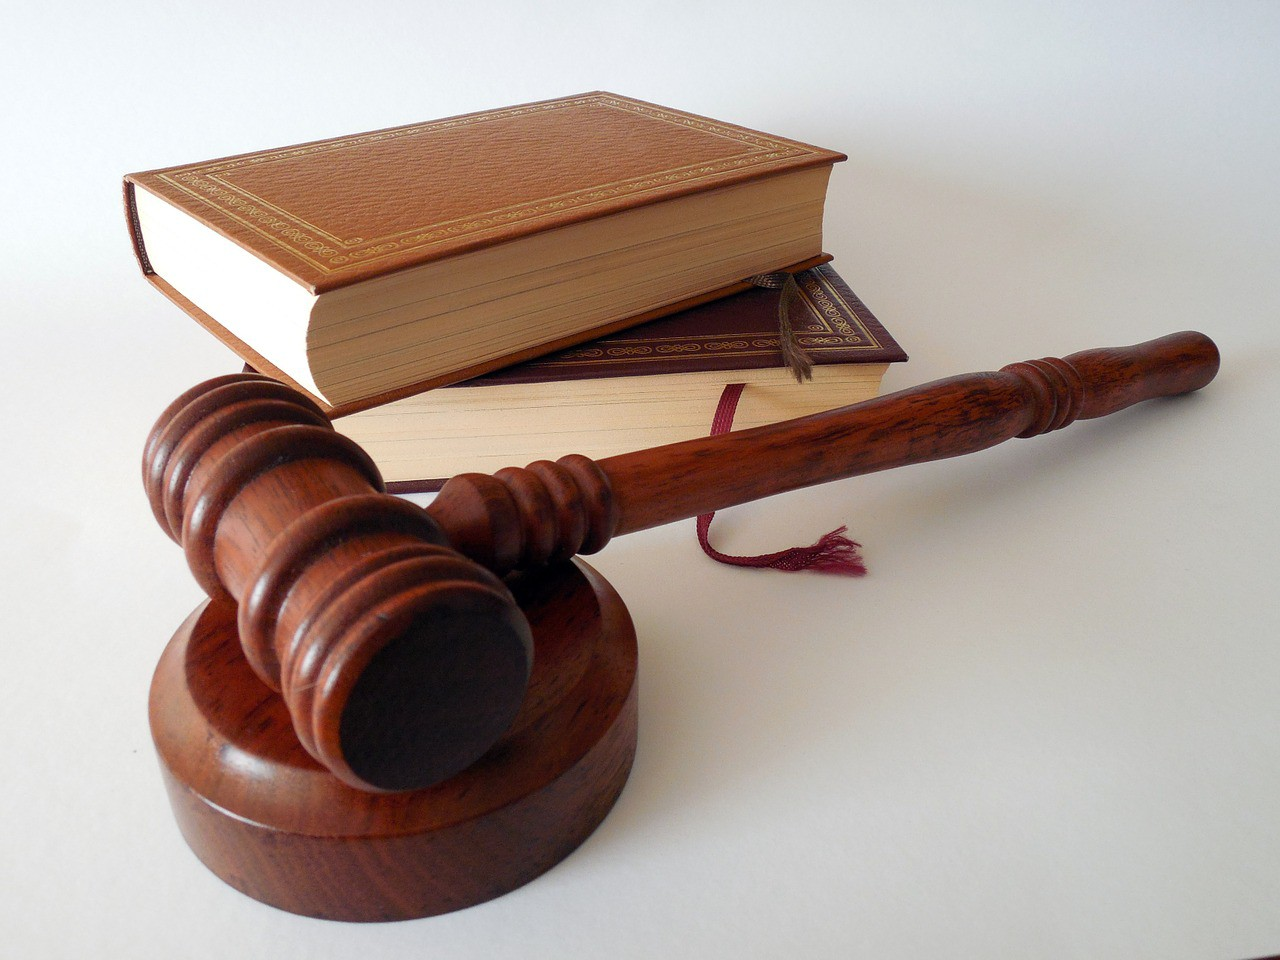 5 Ways a Business Can Benefit from Legal Help